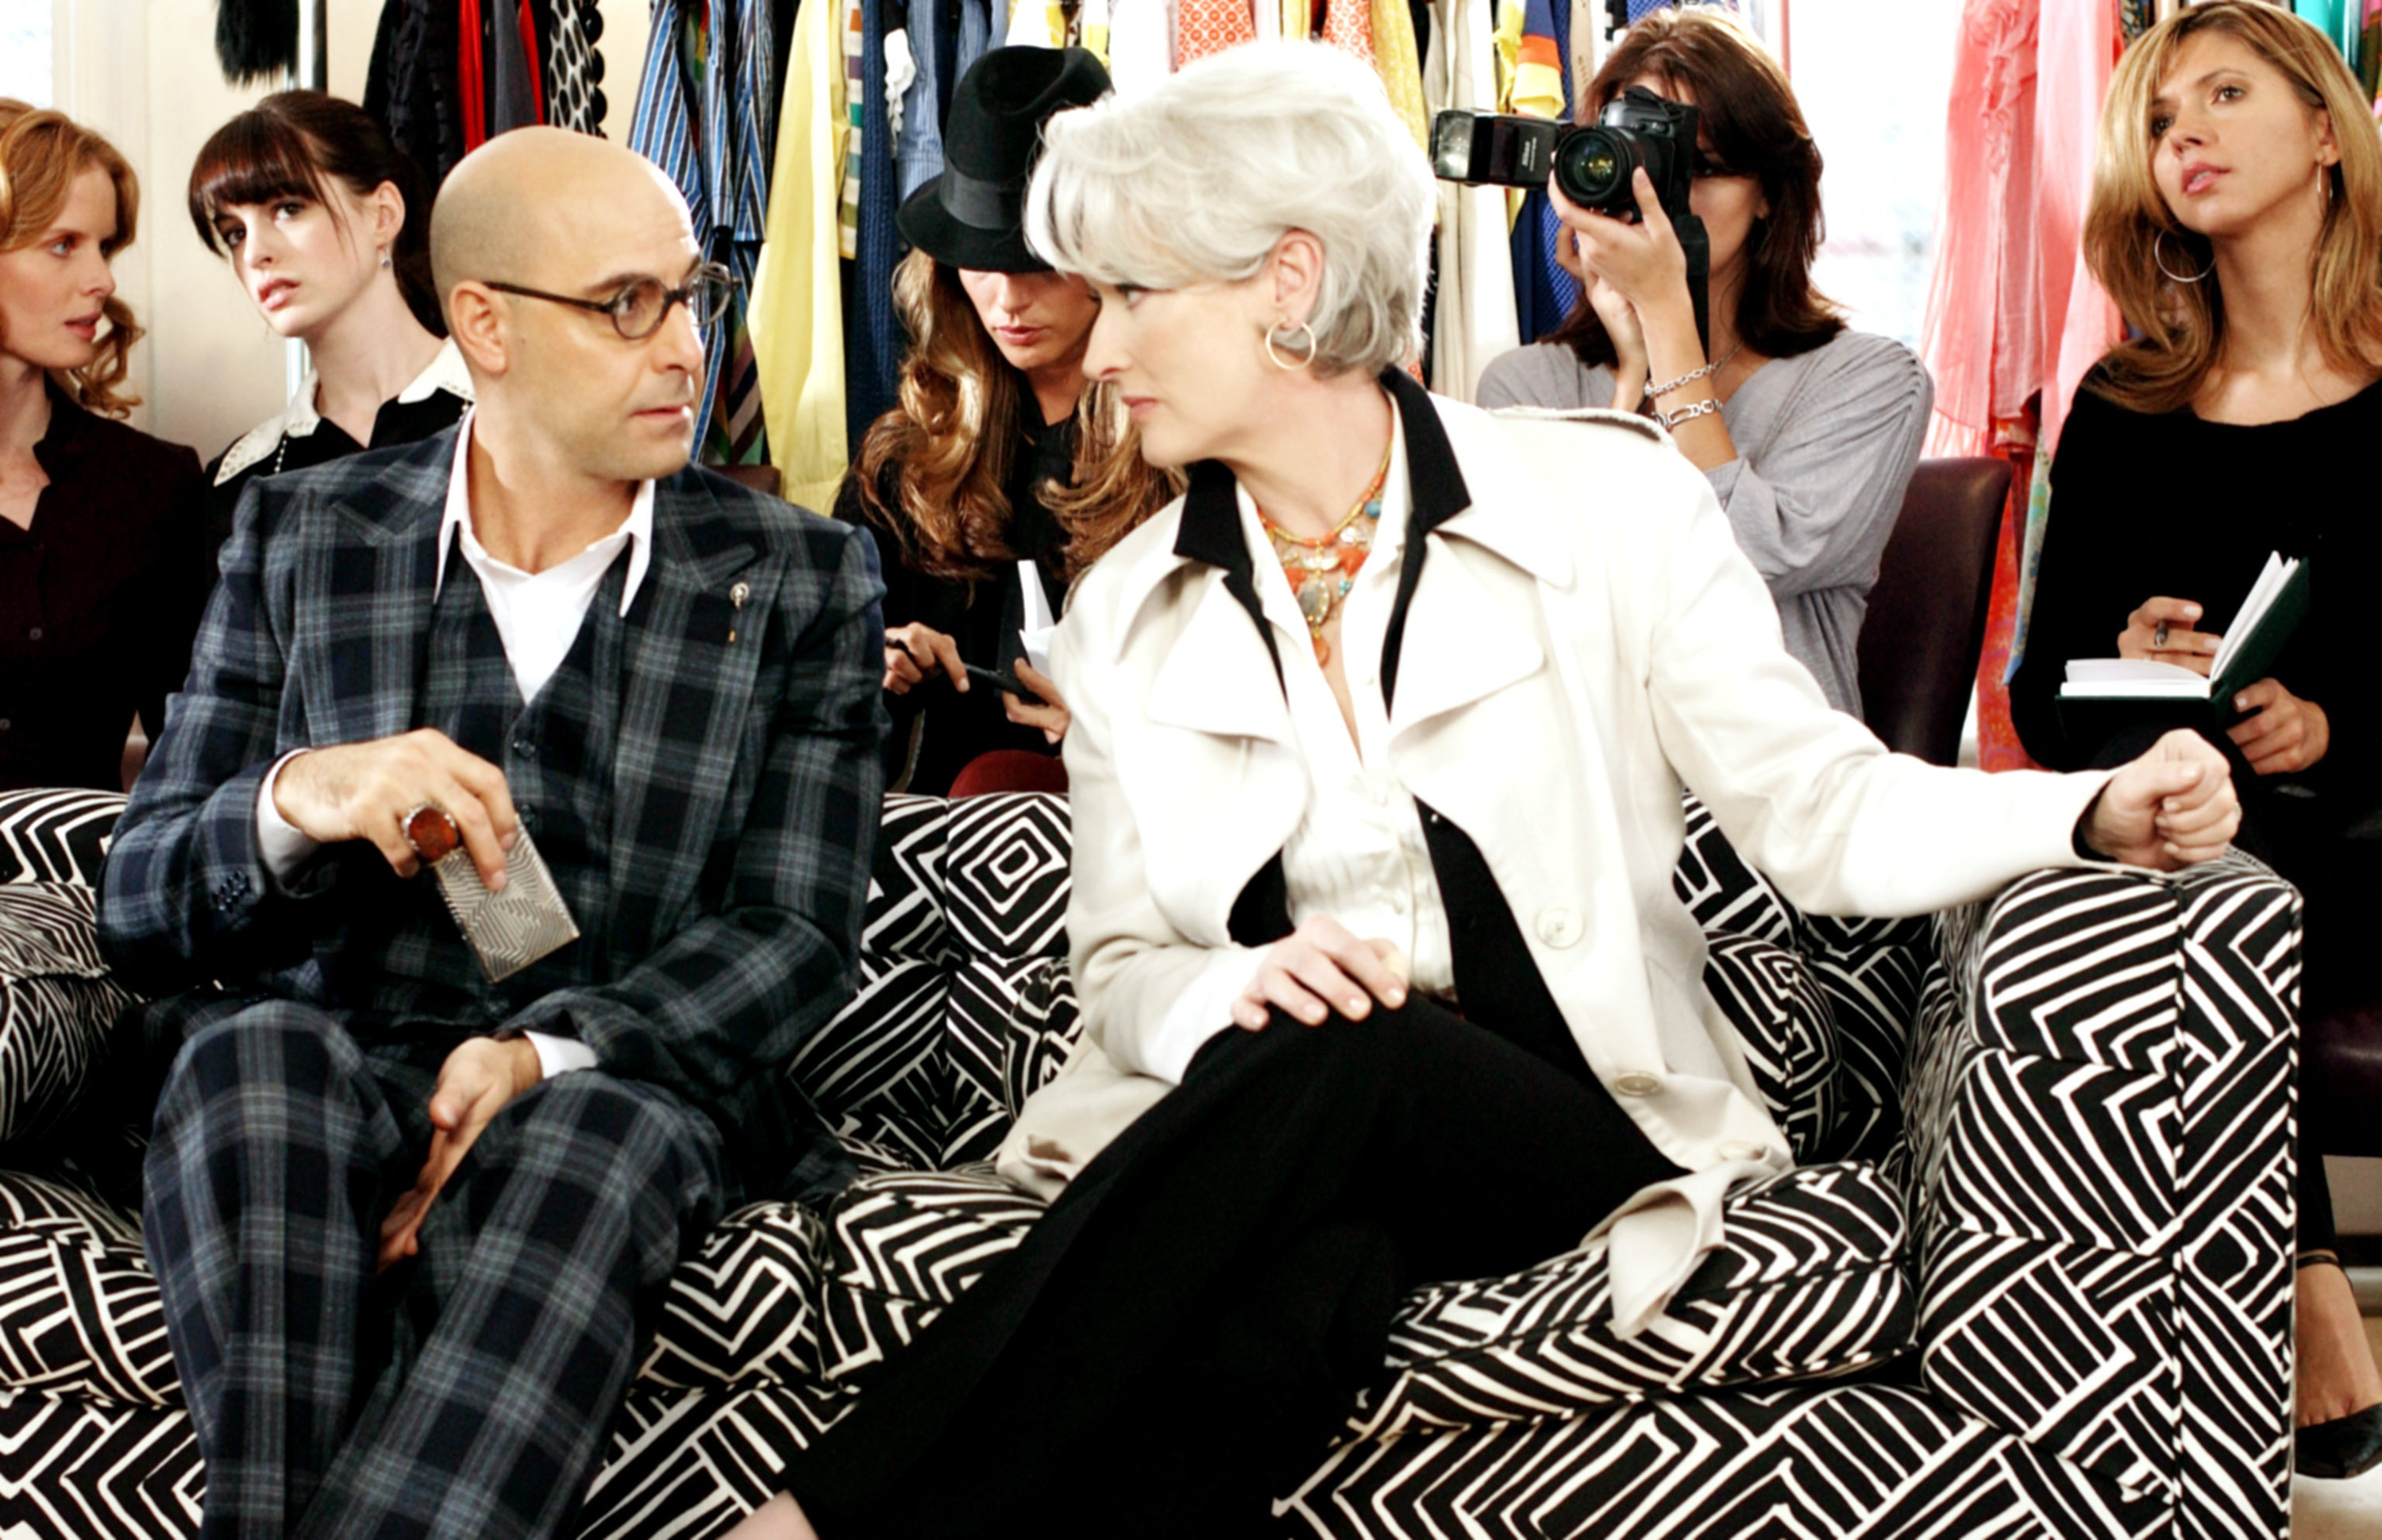 Stanley Tucci and Meryl Streep talk at a fashion event